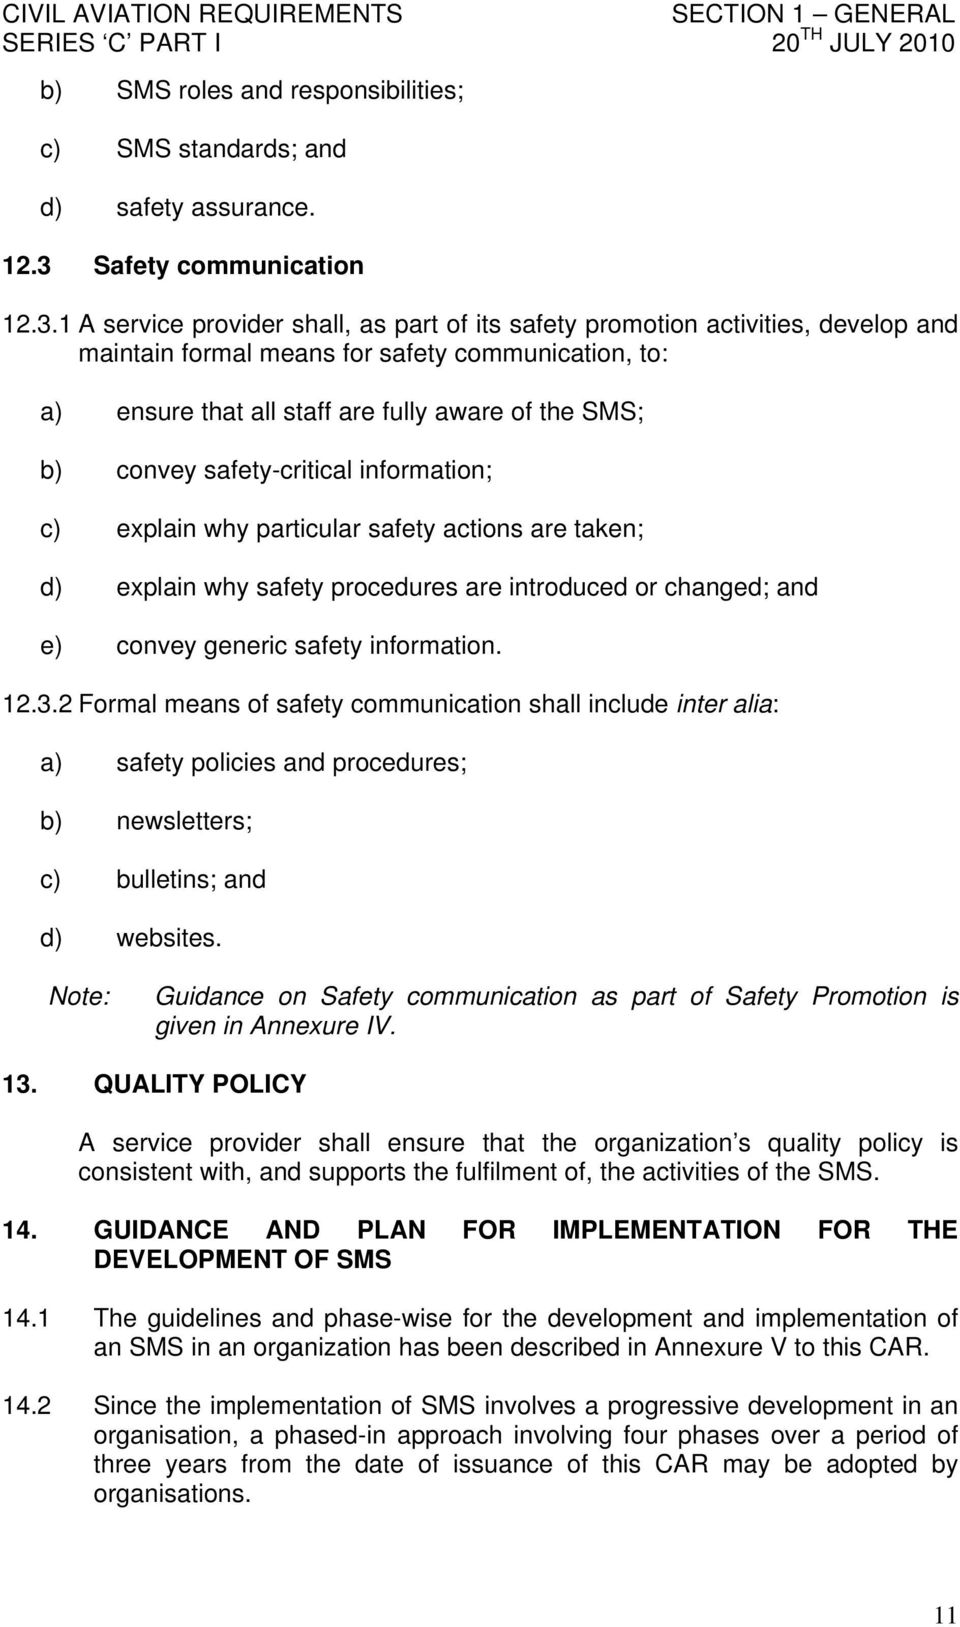 1 A service provider shall, as part of its safety promotion activities, develop and maintain formal means for safety communication, to: a) ensure that all staff are fully aware of the SMS; b) convey